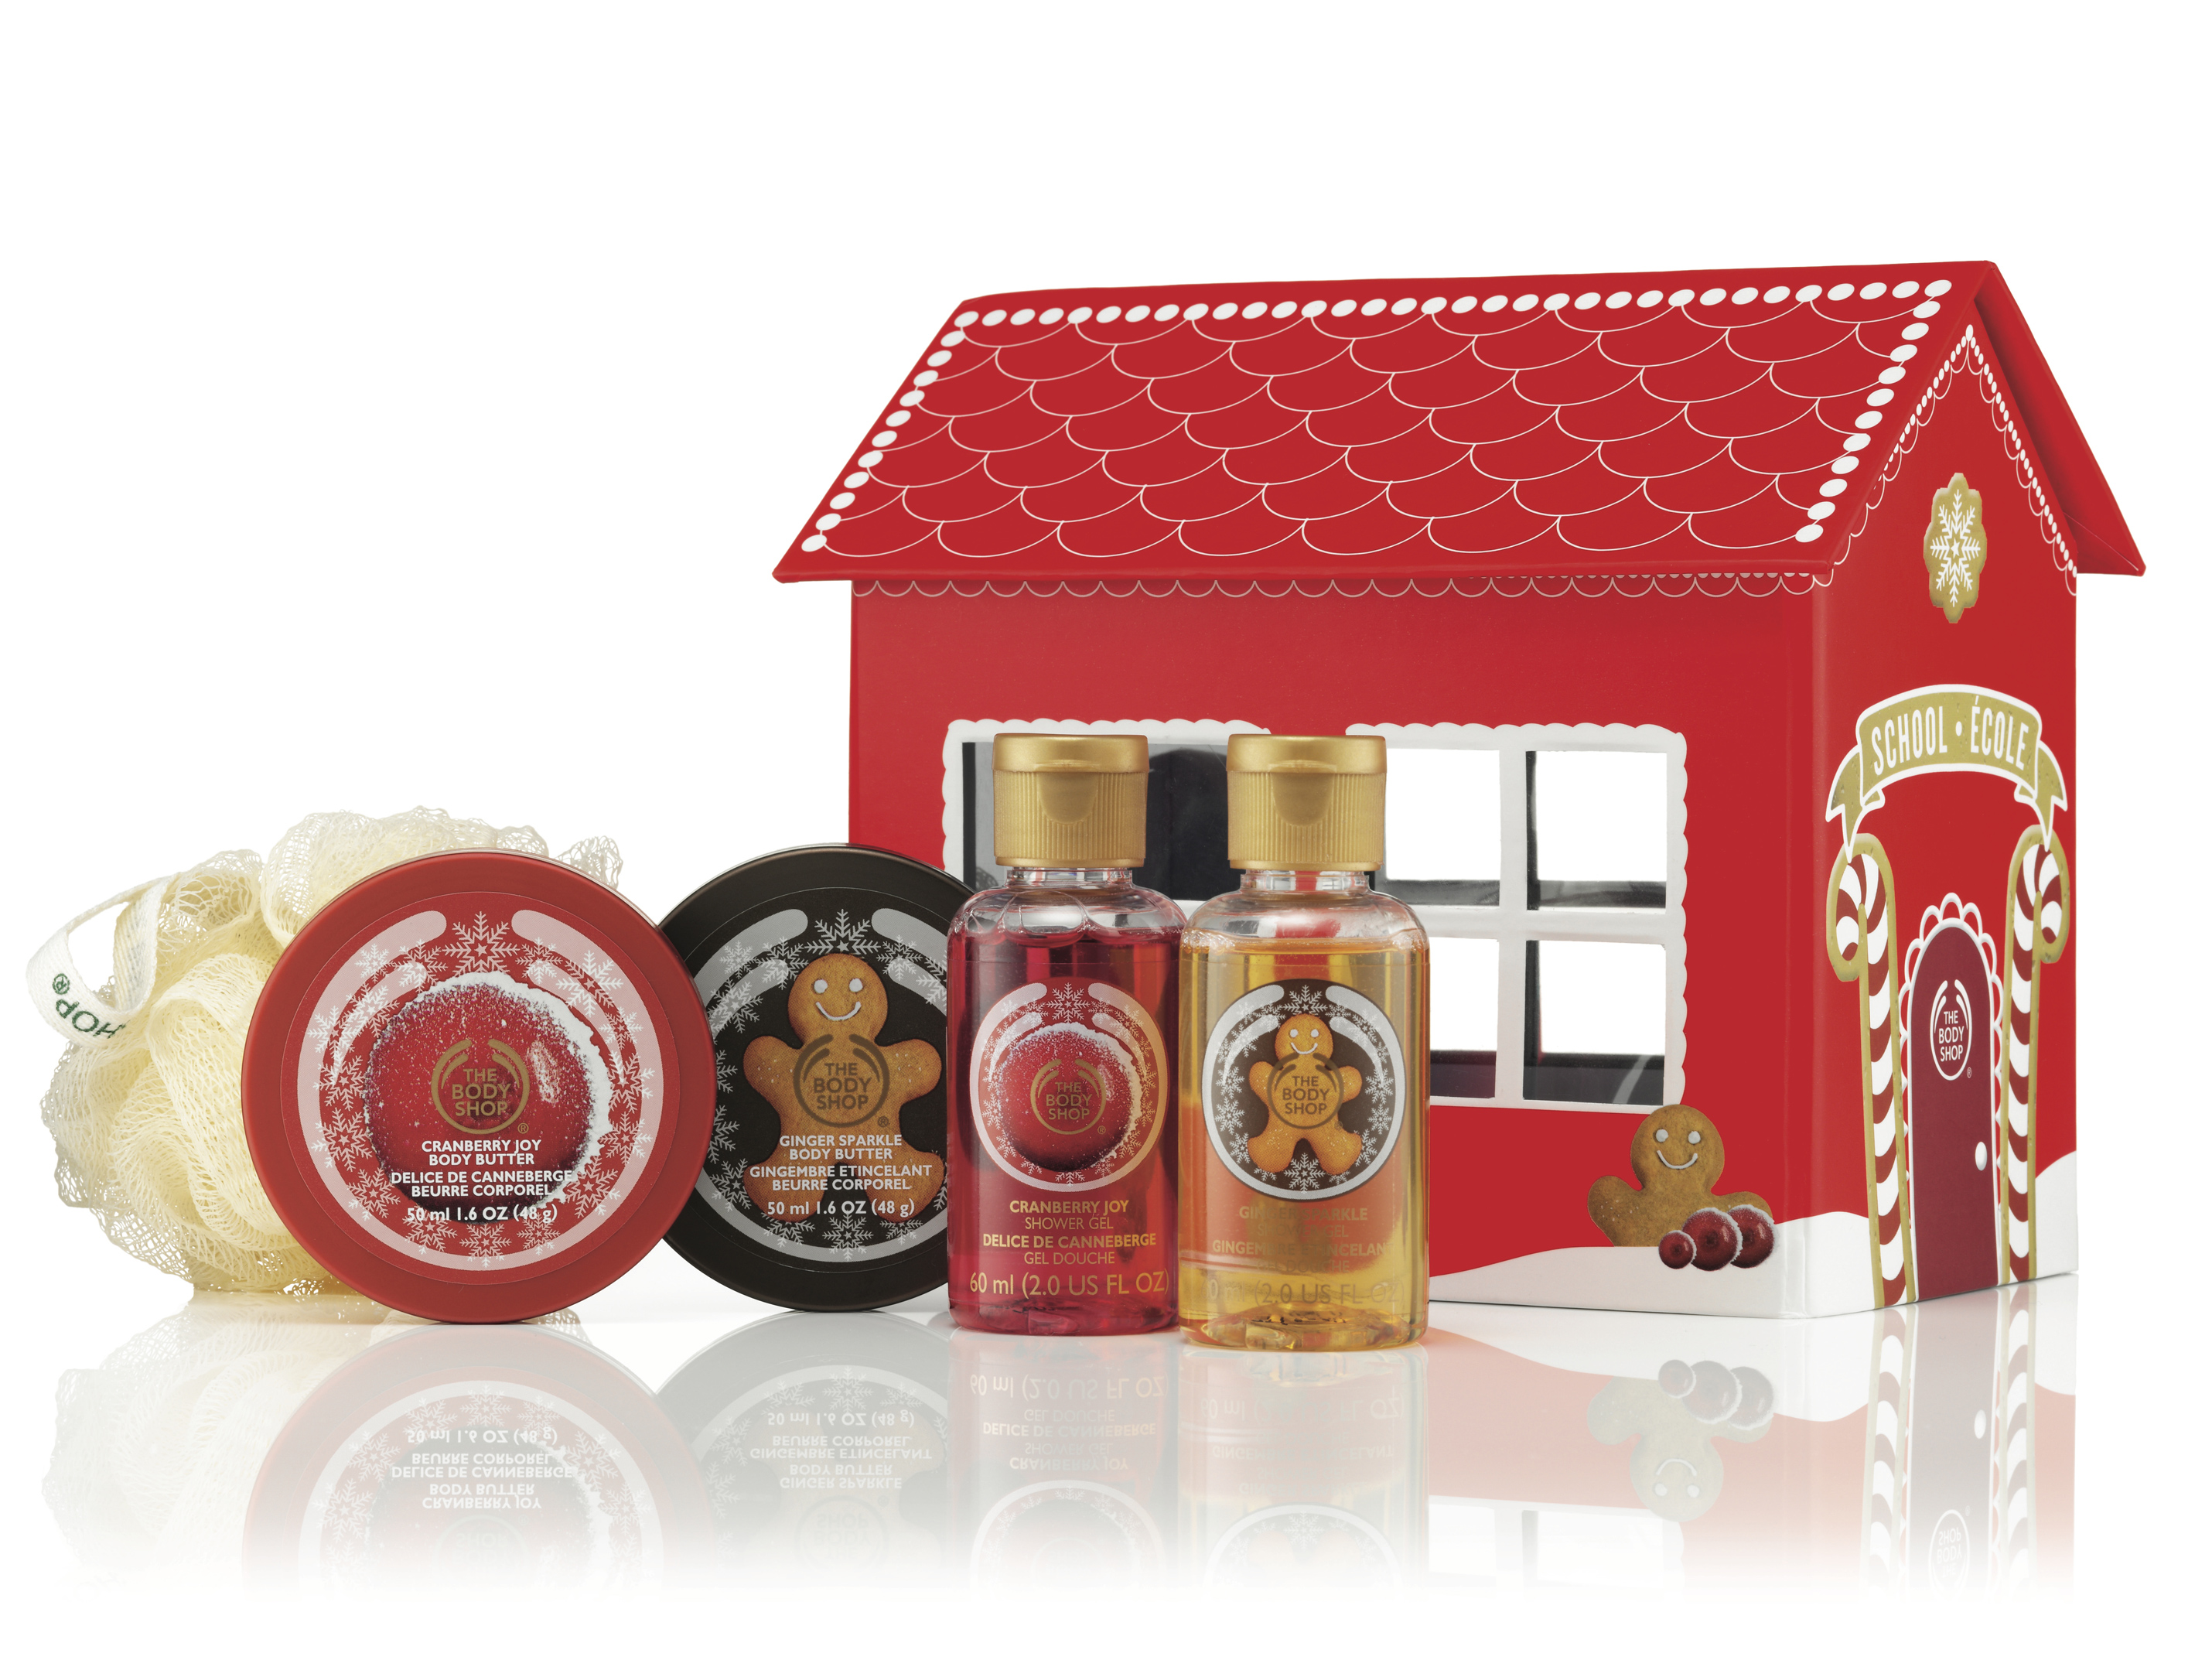 The Body Shop Holiday 2013 Collection